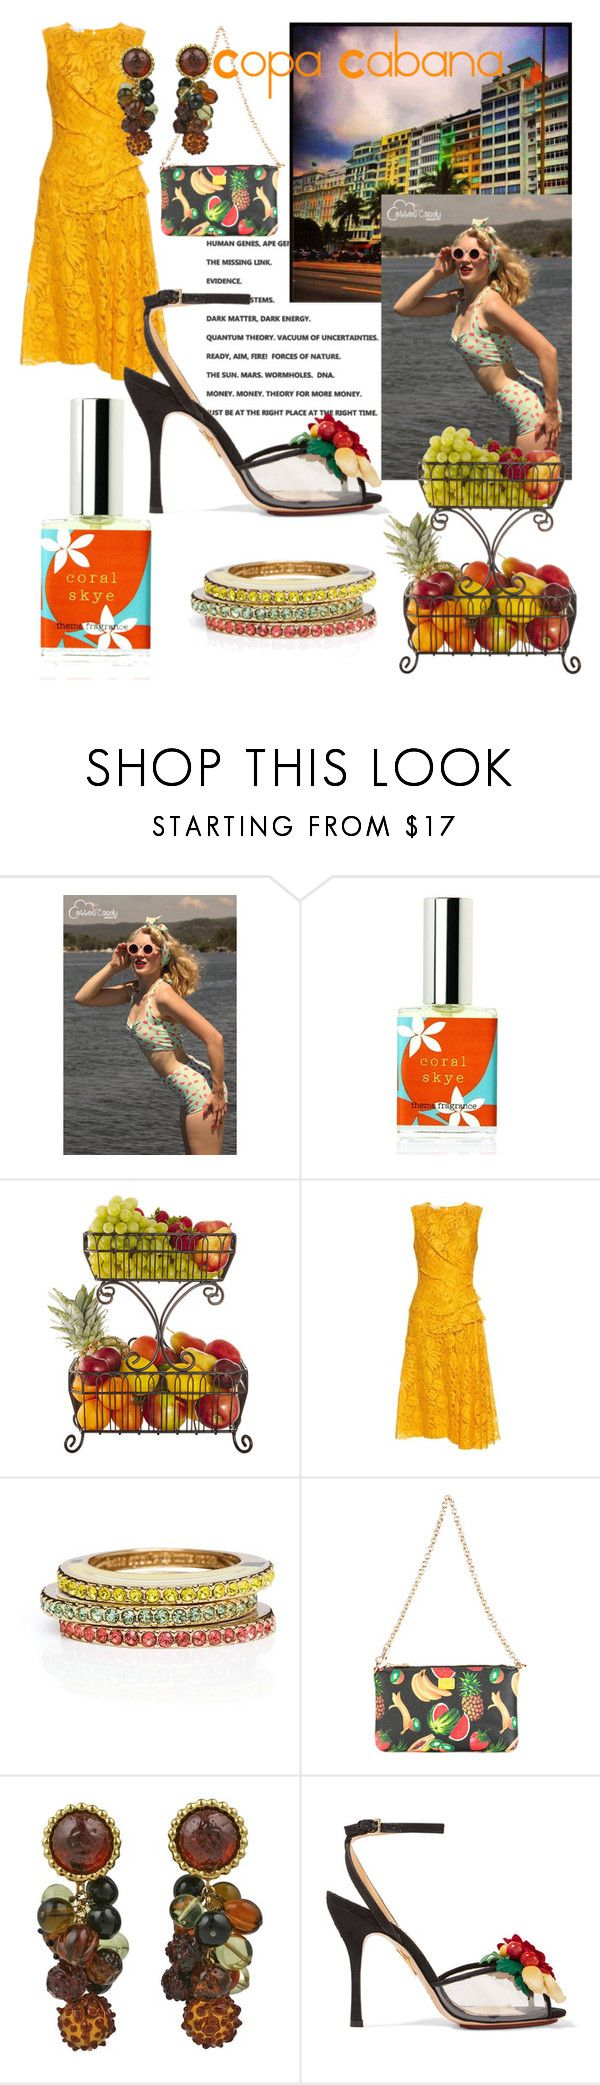 """Copa Cabana"" by mdfletch ❤ liked on Polyvore featuring FRUIT, Mikasa, Oscar de la Renta, Kate Spade, Dolce&Gabbana, DOMINIQUE AURIENTIS, Charlotte Olympia and copacabana"